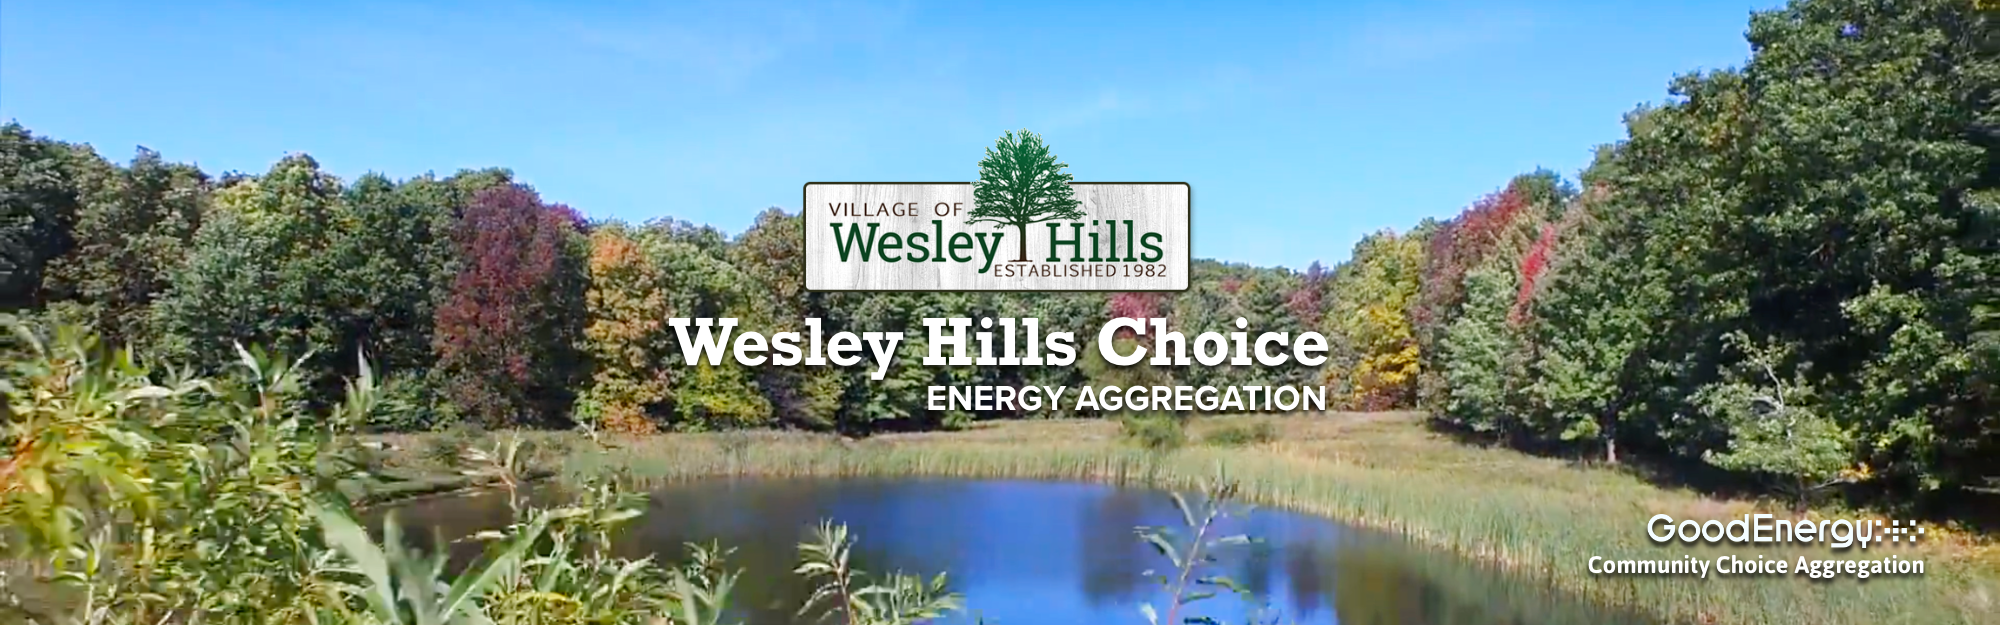 Wesley Hills Choice